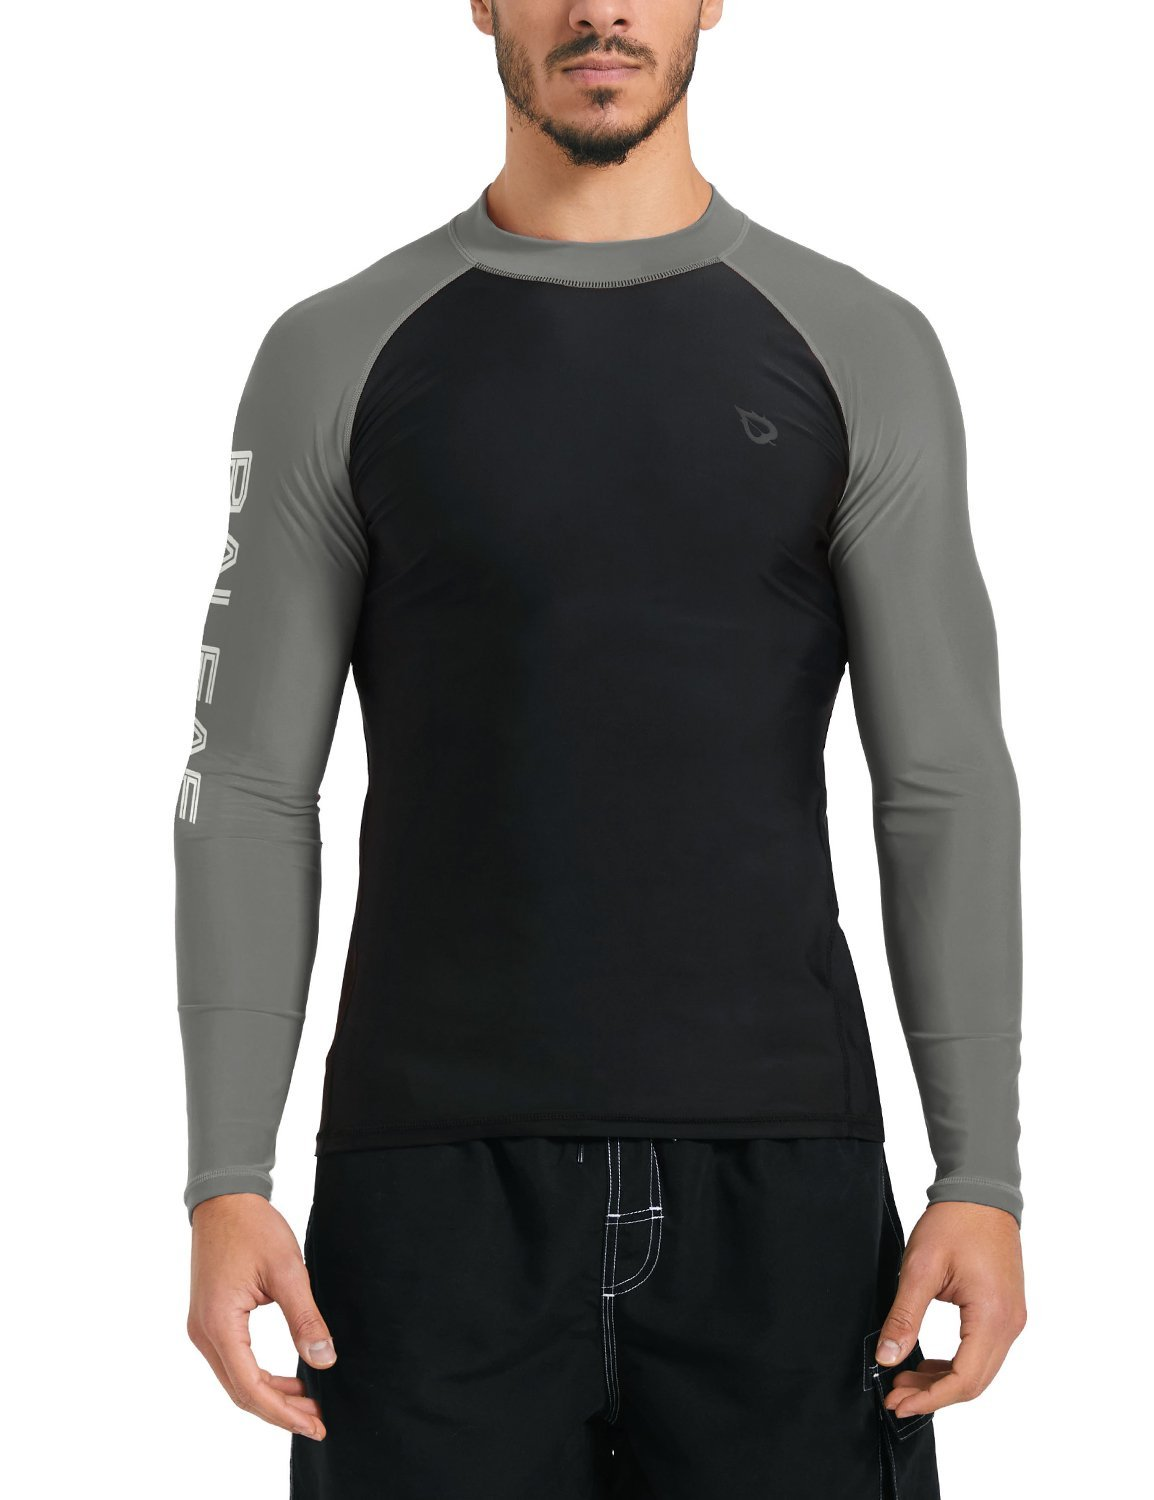 Baleaf Men's Basic Long Sleeve Rashguard UV Sun Protection Athletic Swim Shirt UPF 50+ Black/Grey XL by BALEAF